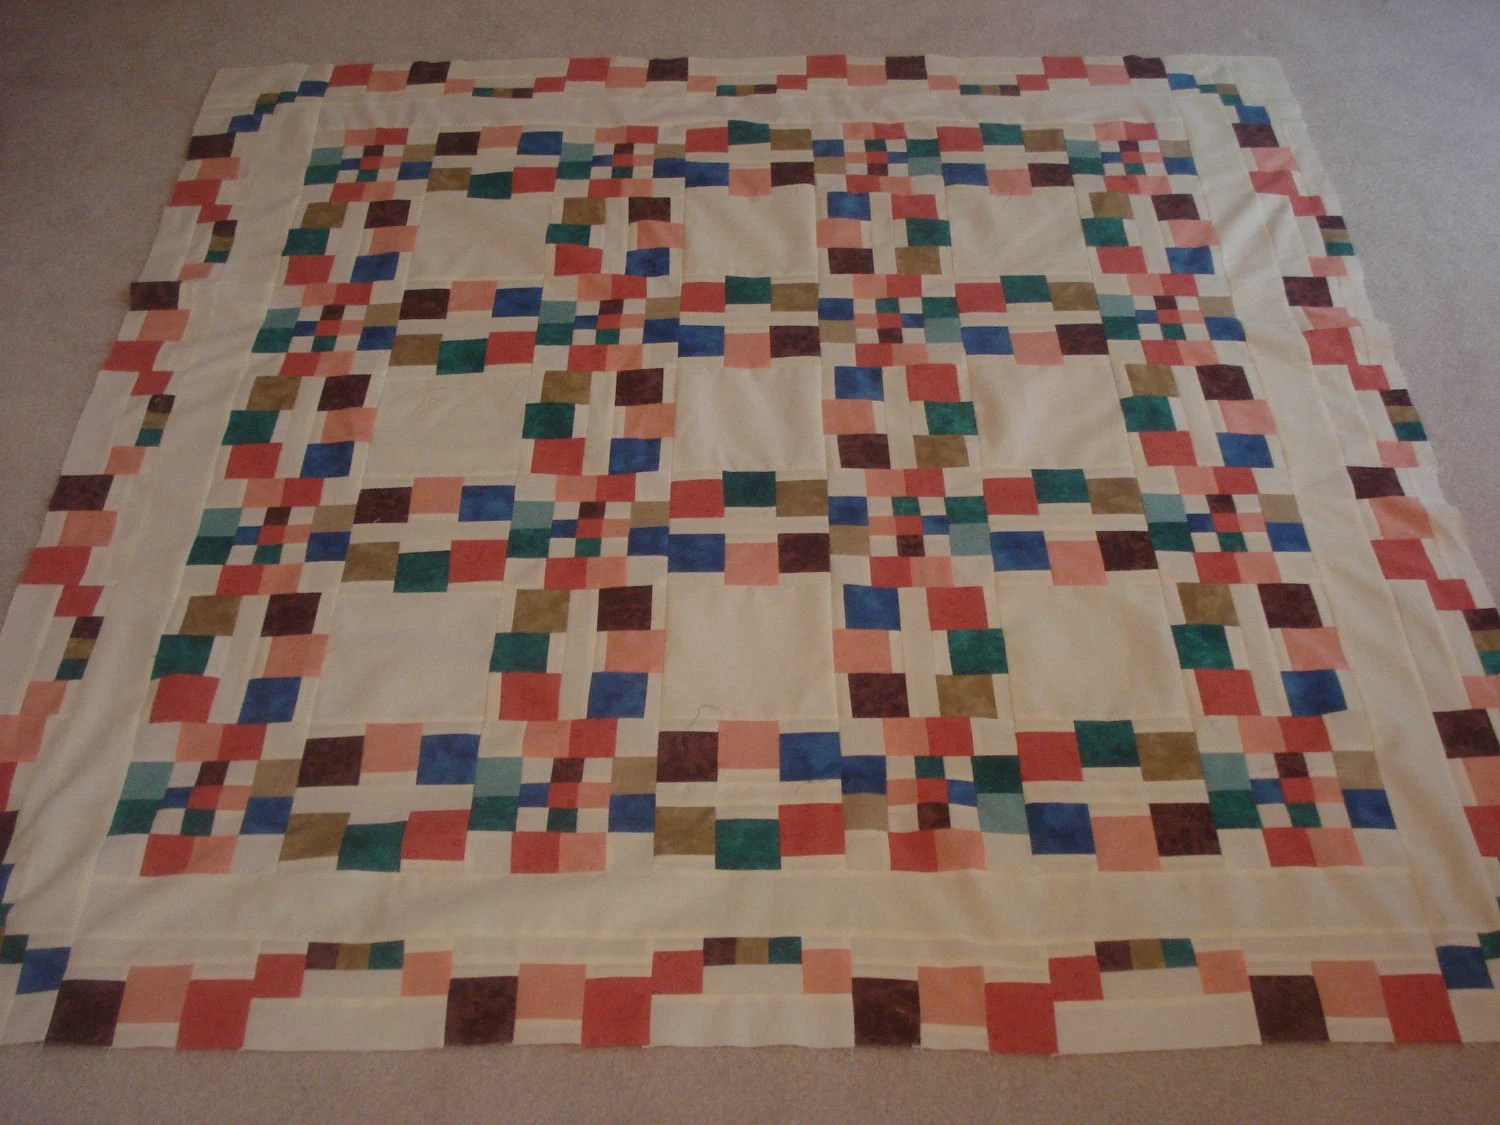 monets wedding ring quilt quilt top only wedding ring quilt pattern Monet s Wedding Ring Quilt Quilt Top Only zoom